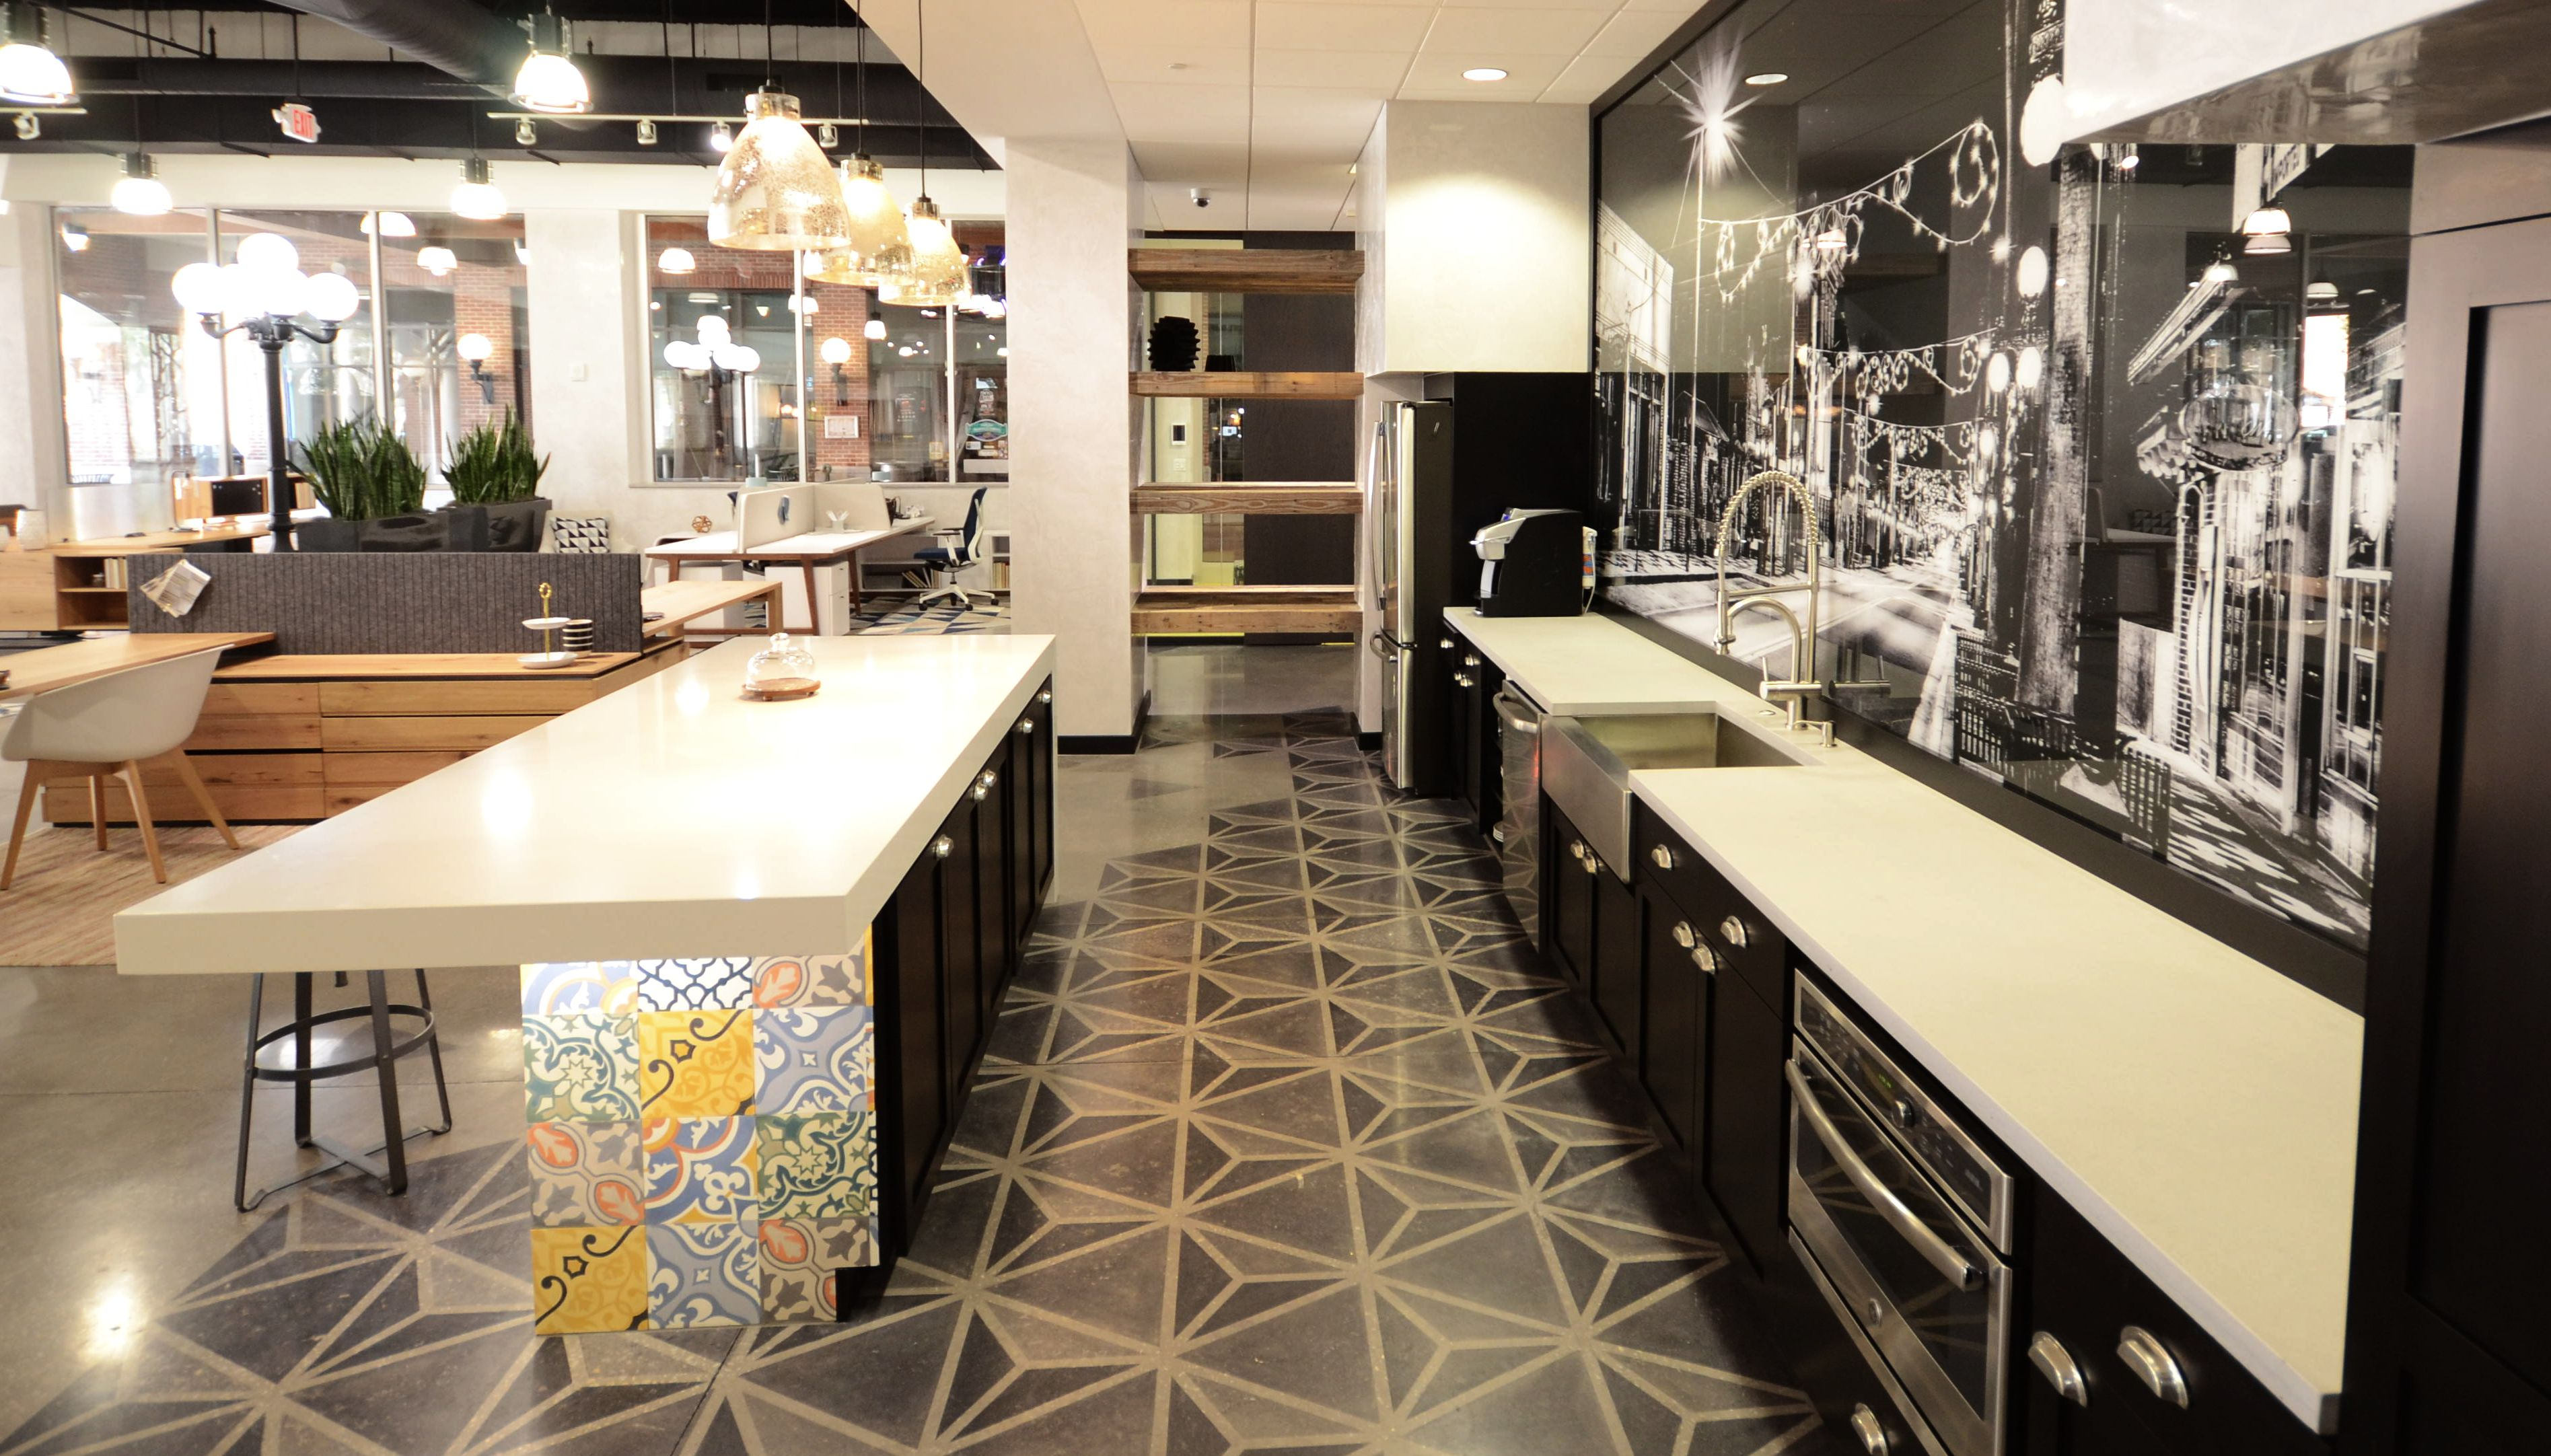 Great Concrete Countertops In Tampa Are The Latest In Kitchen Design